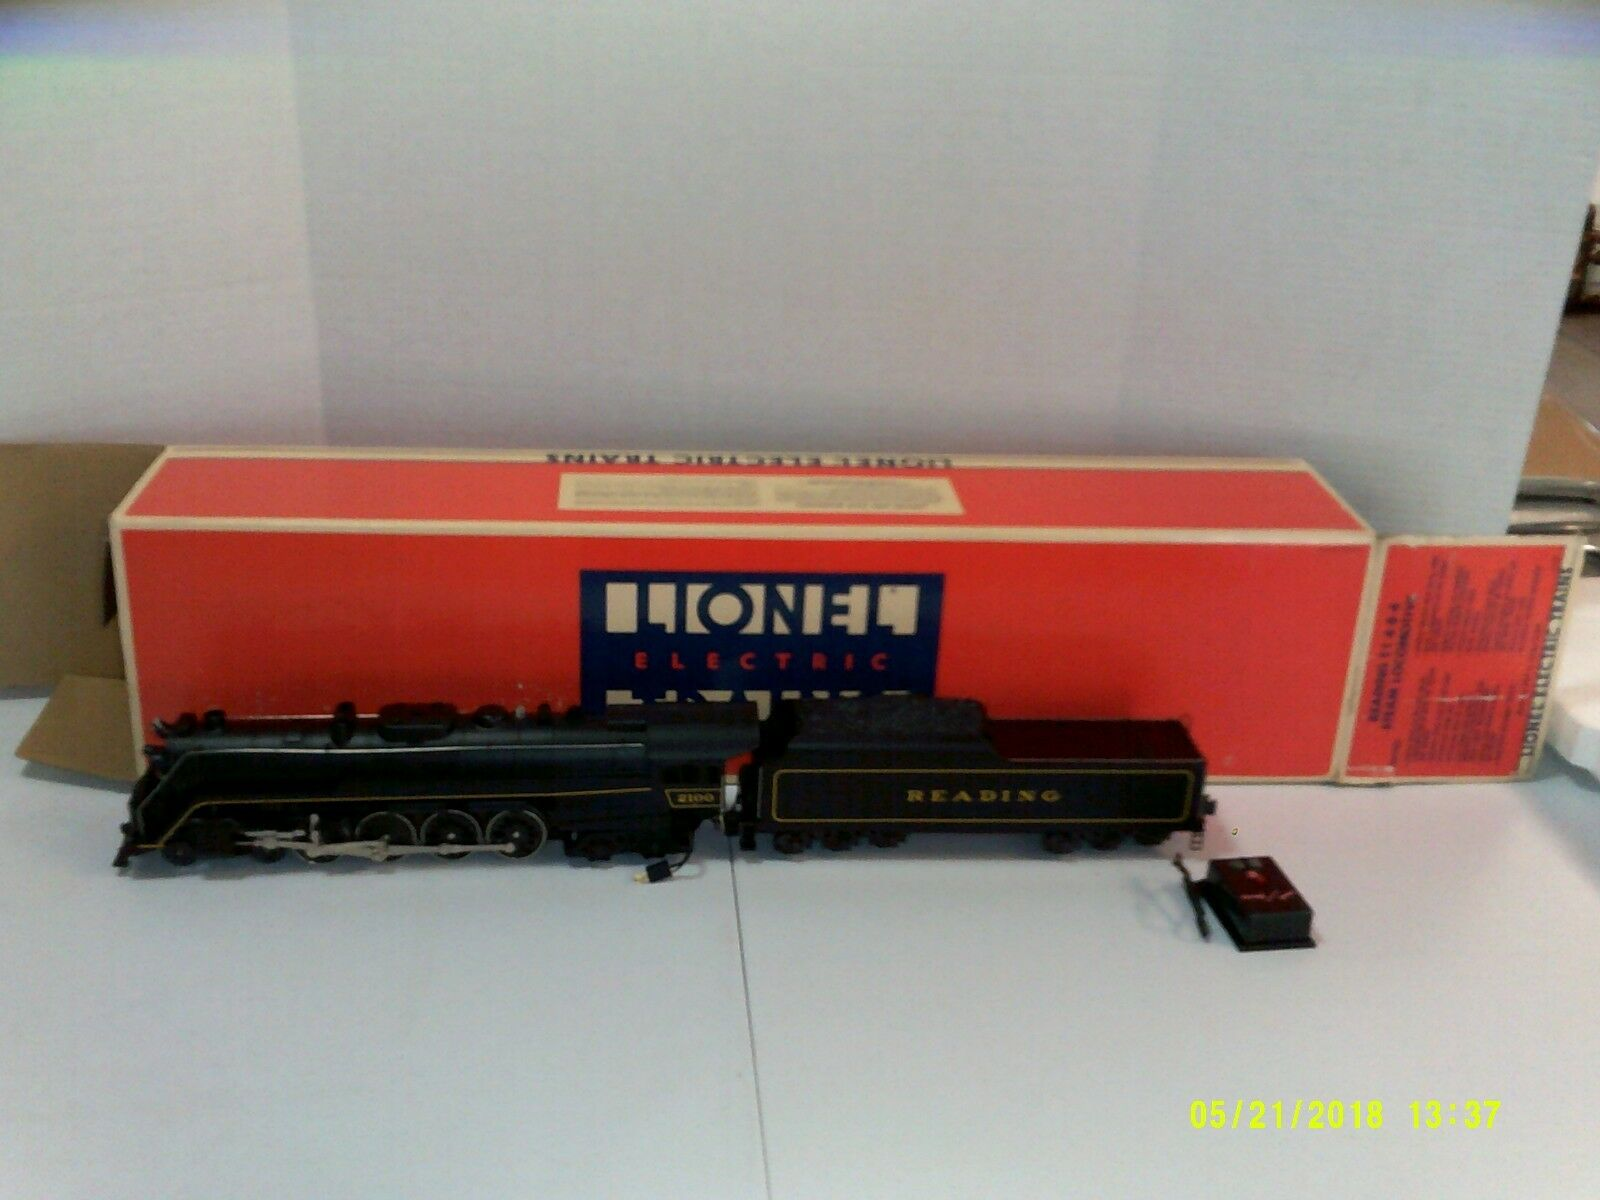 Lionel Reading T-1 4-8-4 Steam Locomotive